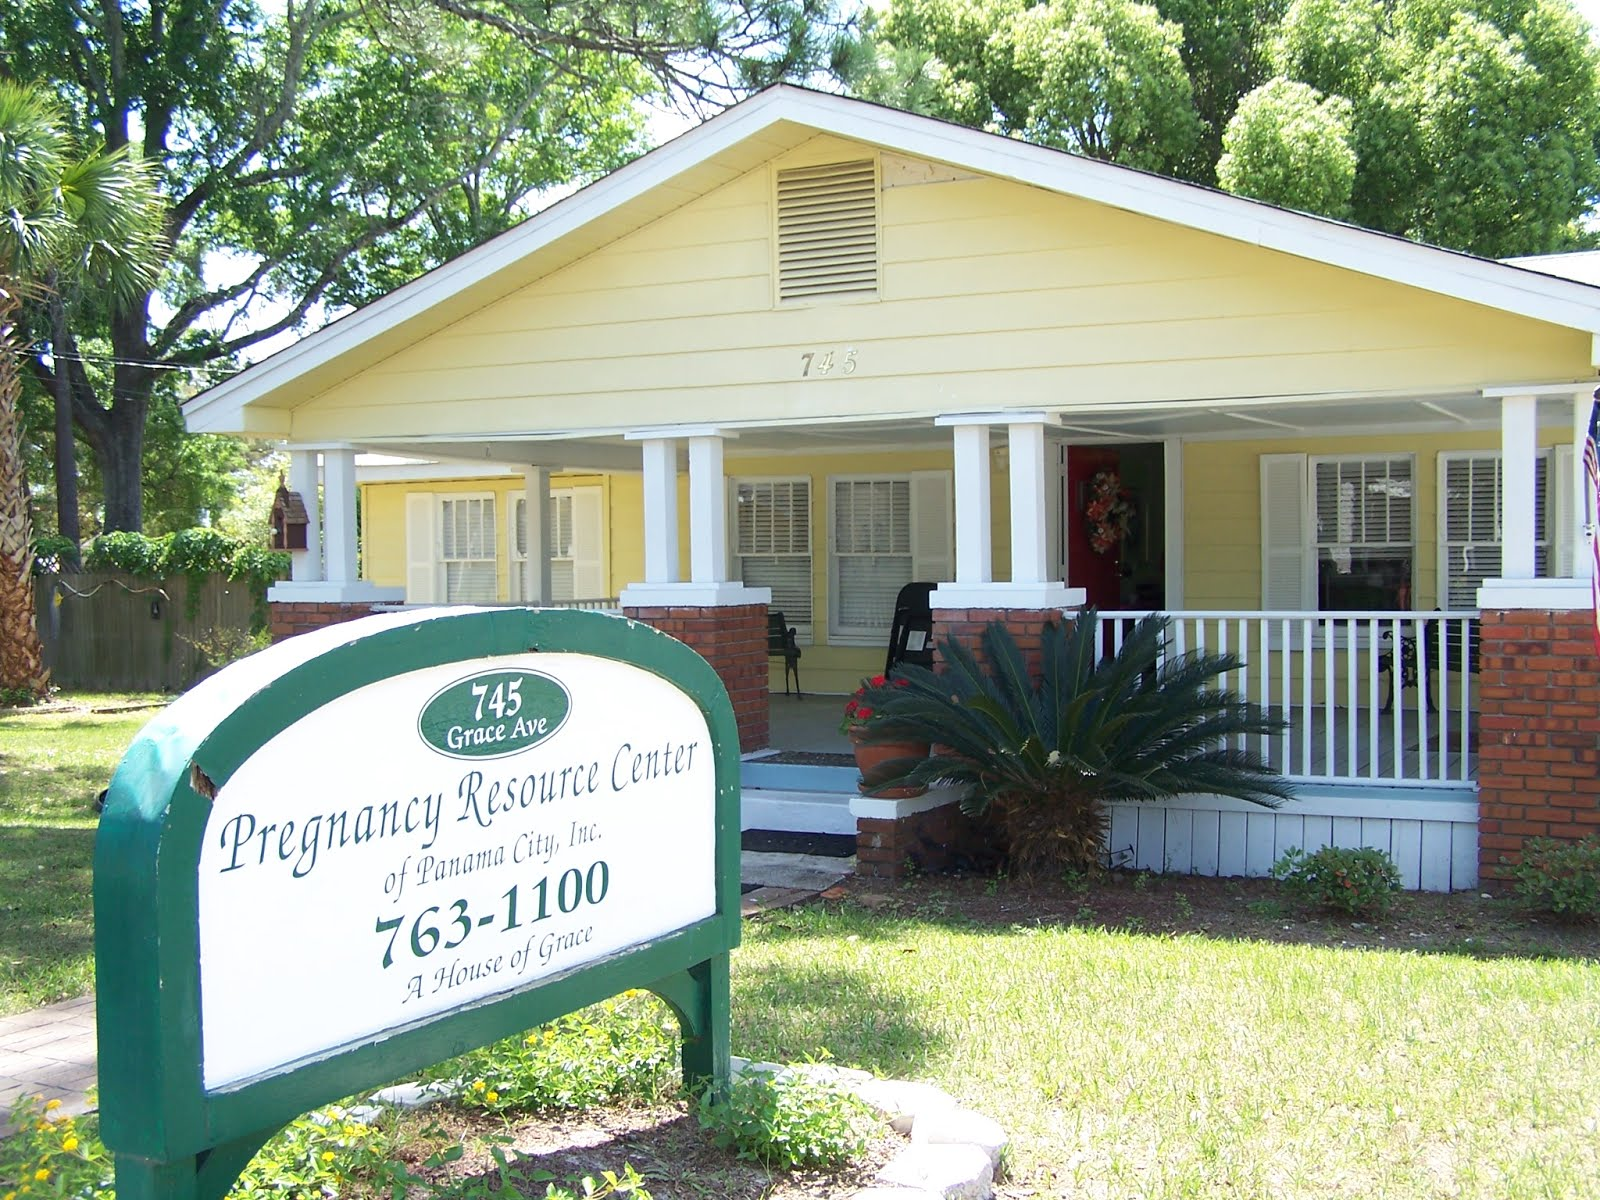 745 Grace Avenue, Panama City